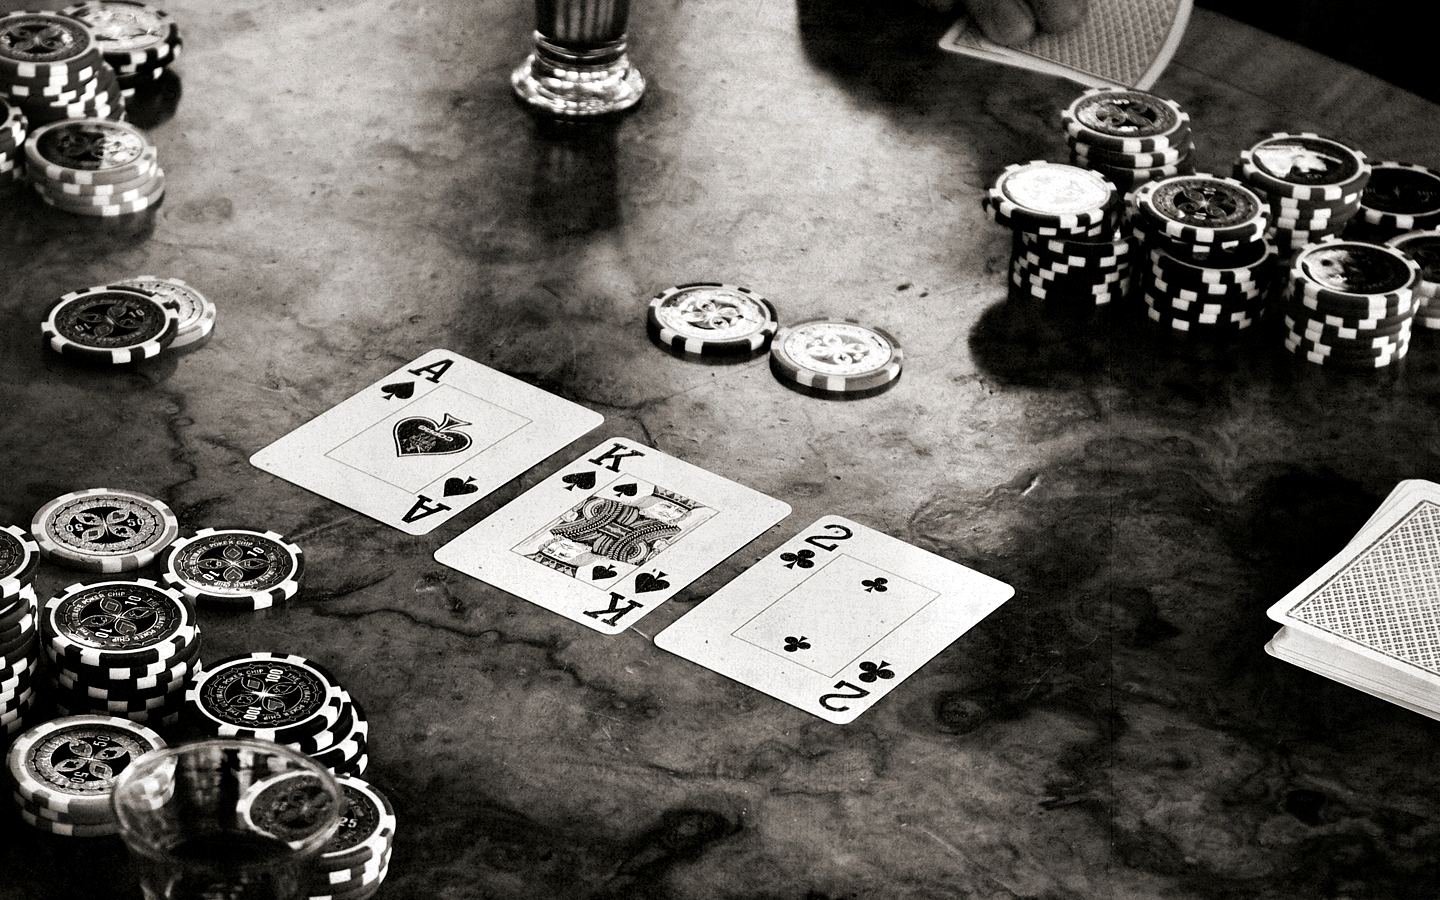 Telltales and poker: how does this work